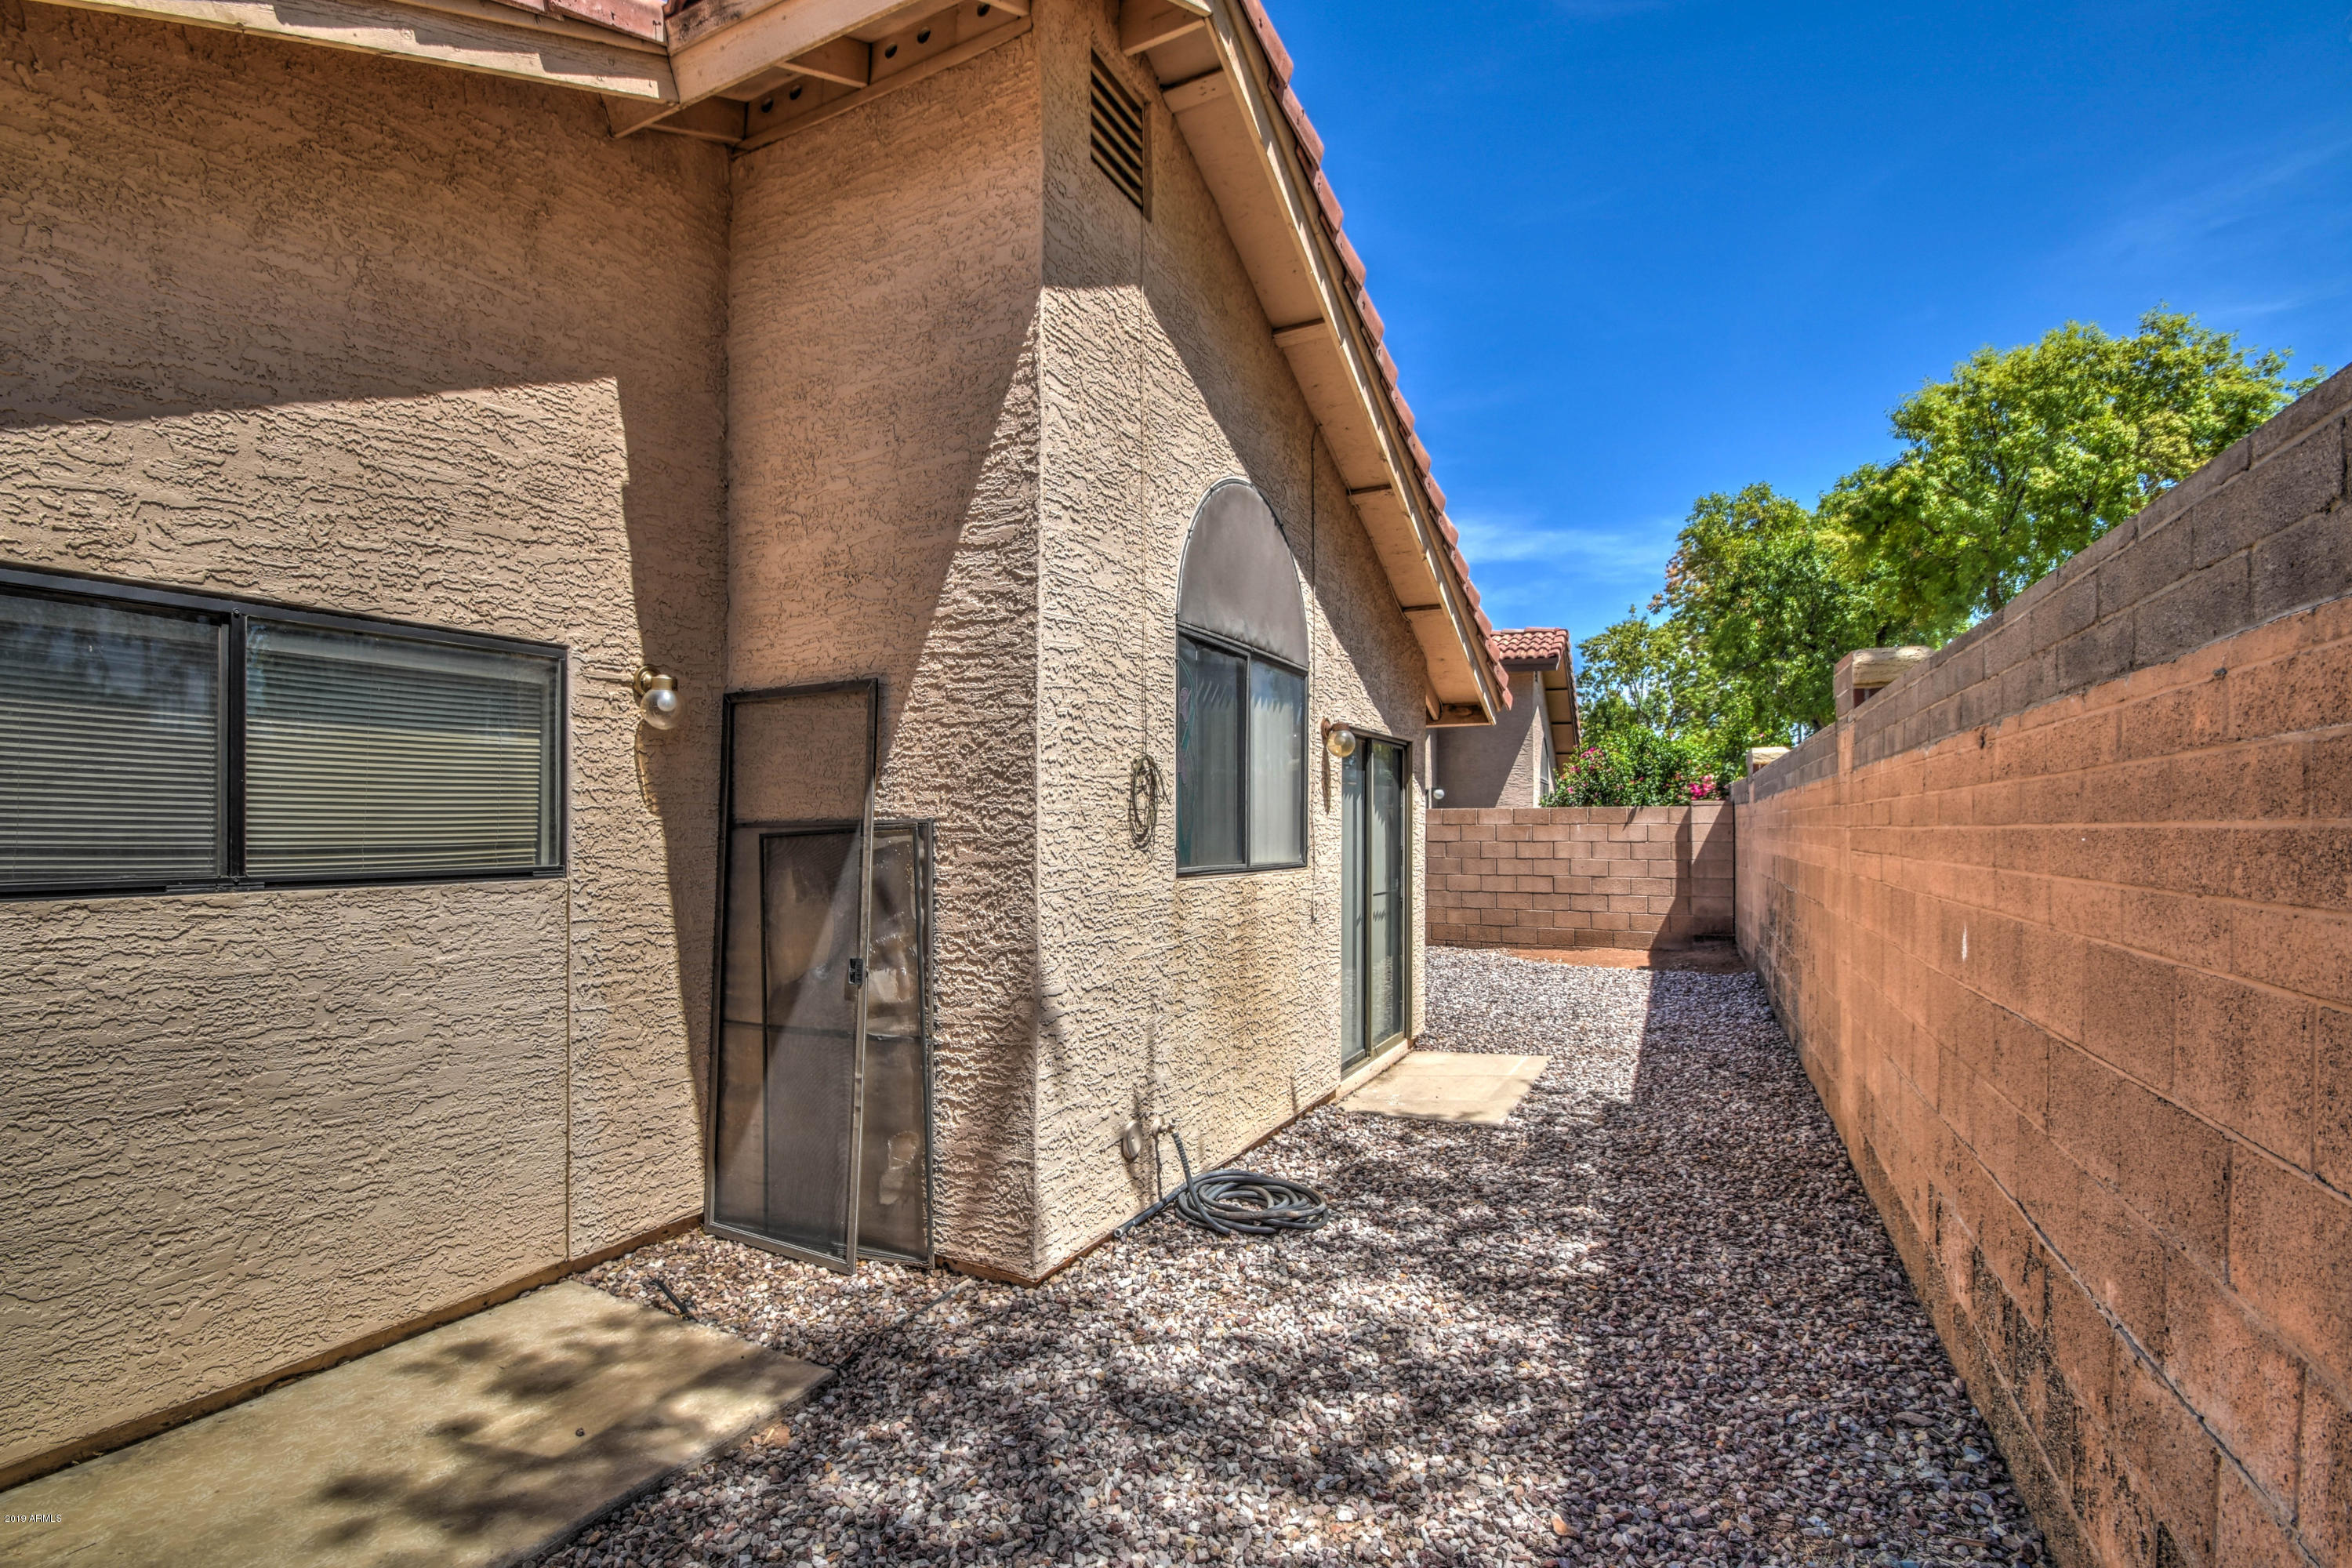 MLS 5970818 1019 W SUNWARD Drive, Gilbert, AZ 85233 Gilbert AZ The Islands